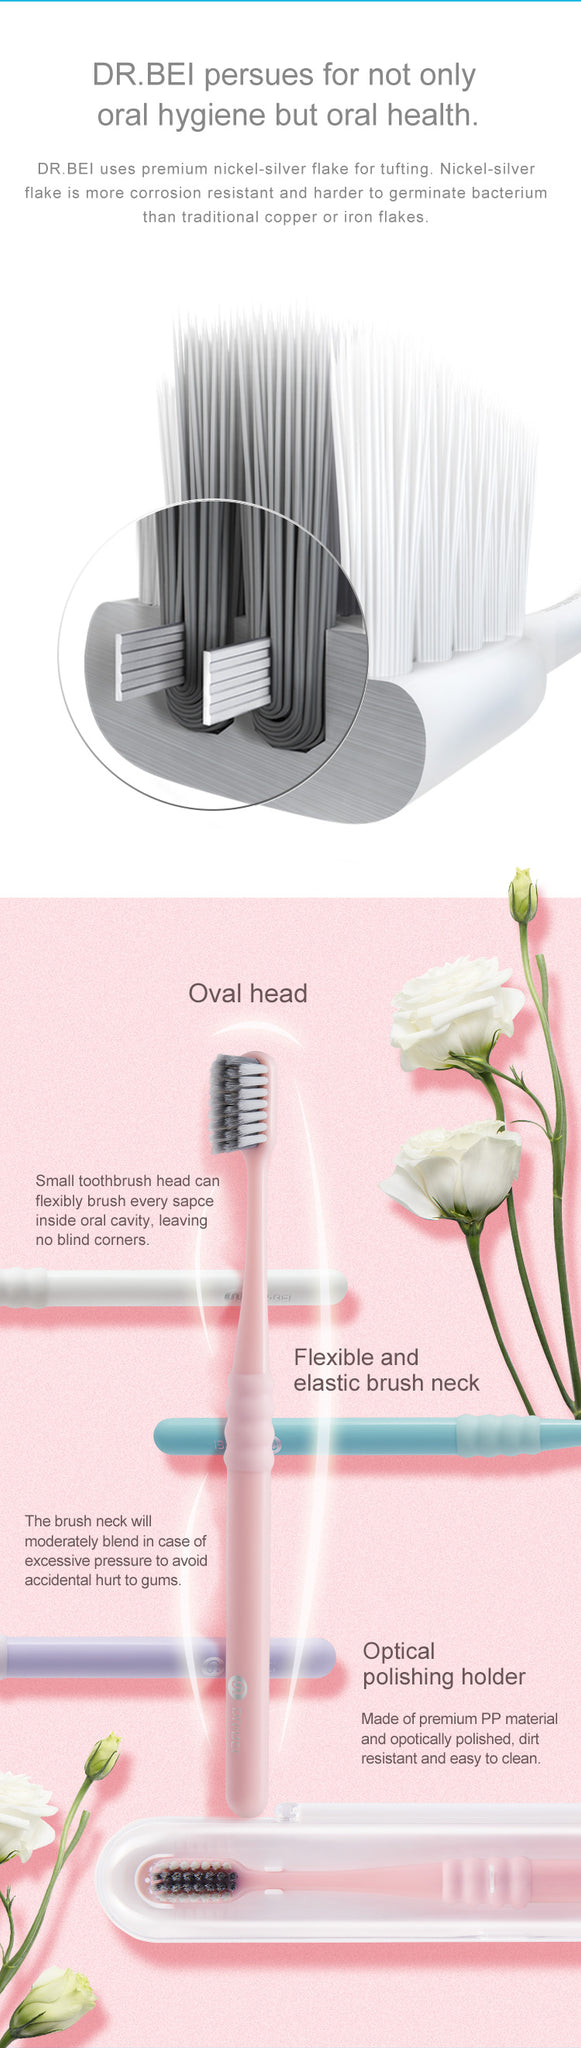 DR.BEI Bass Toothbrush, 4 Pieces (Comfort) Xiaomi Youpin DR·BEI Portable Deep Cleaning 4 Colors Toothbrush With Travel Box Dental Oral Care Soft Toothbrush Oral Hygiene Xiaomi Youpin